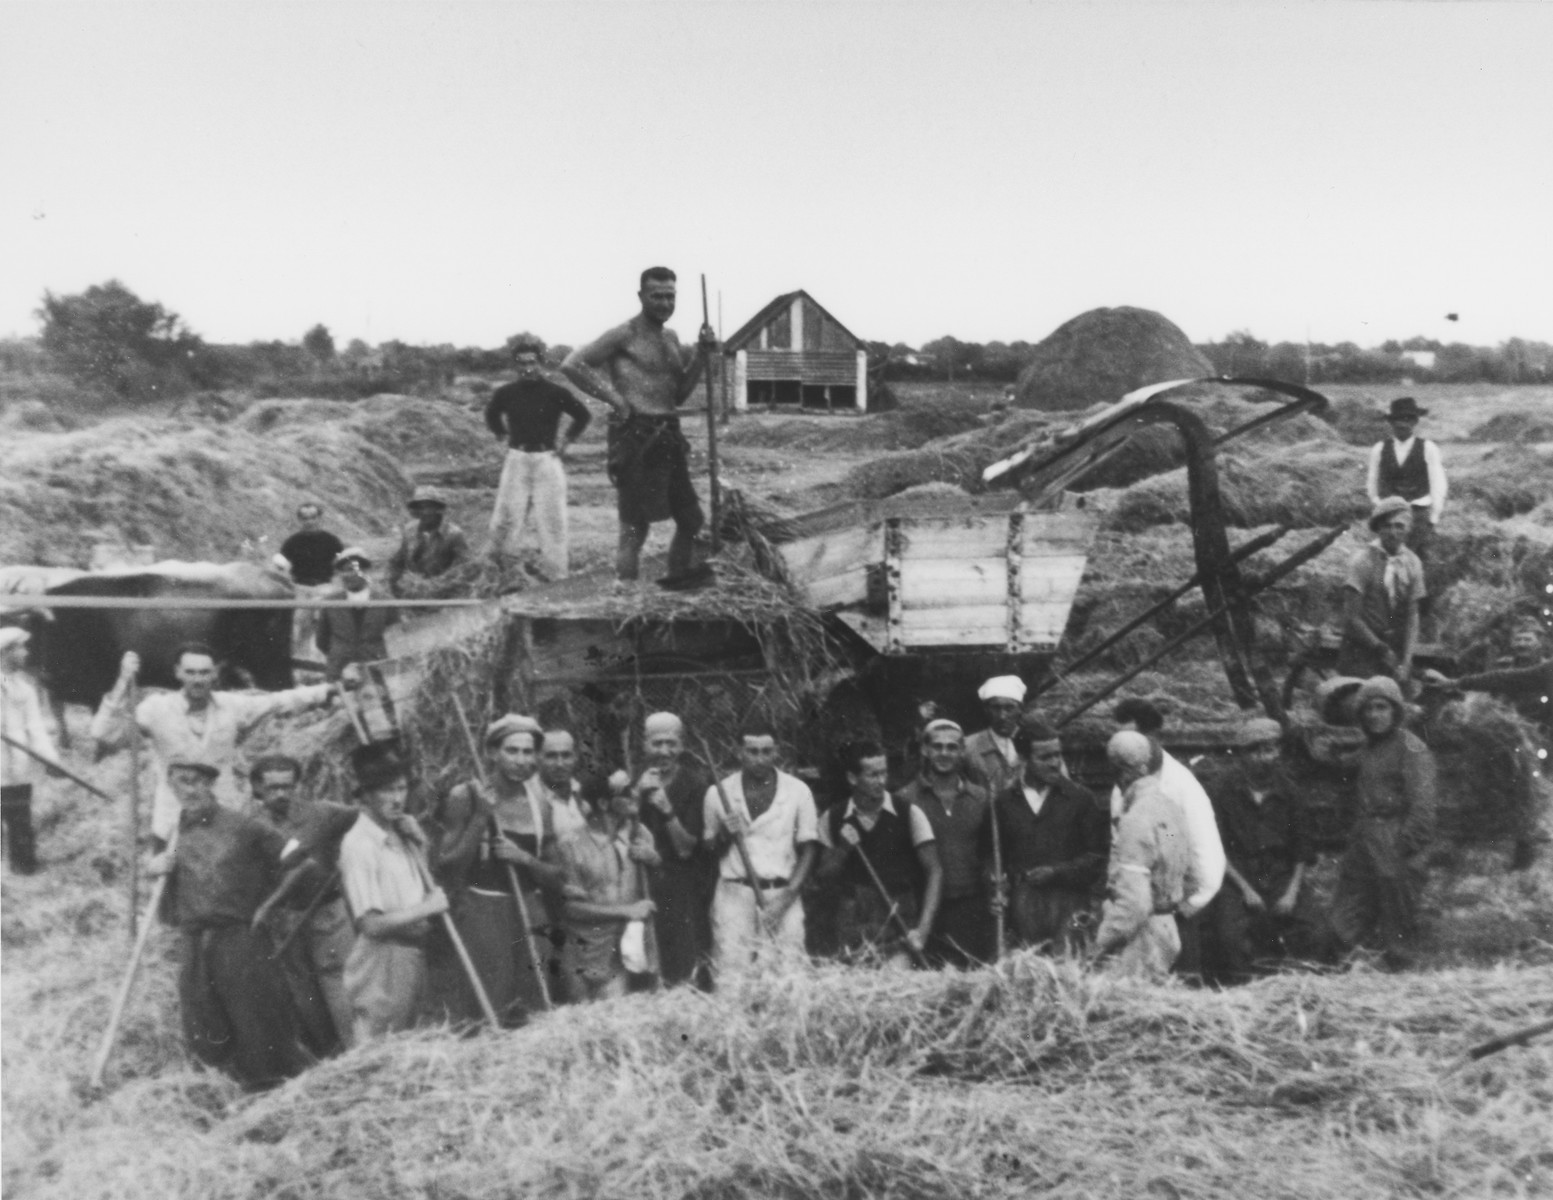 Group portrait of Jewish prisoners mowing hay in the Sabac concentration camp.  Among those pictured is Walter Fink.